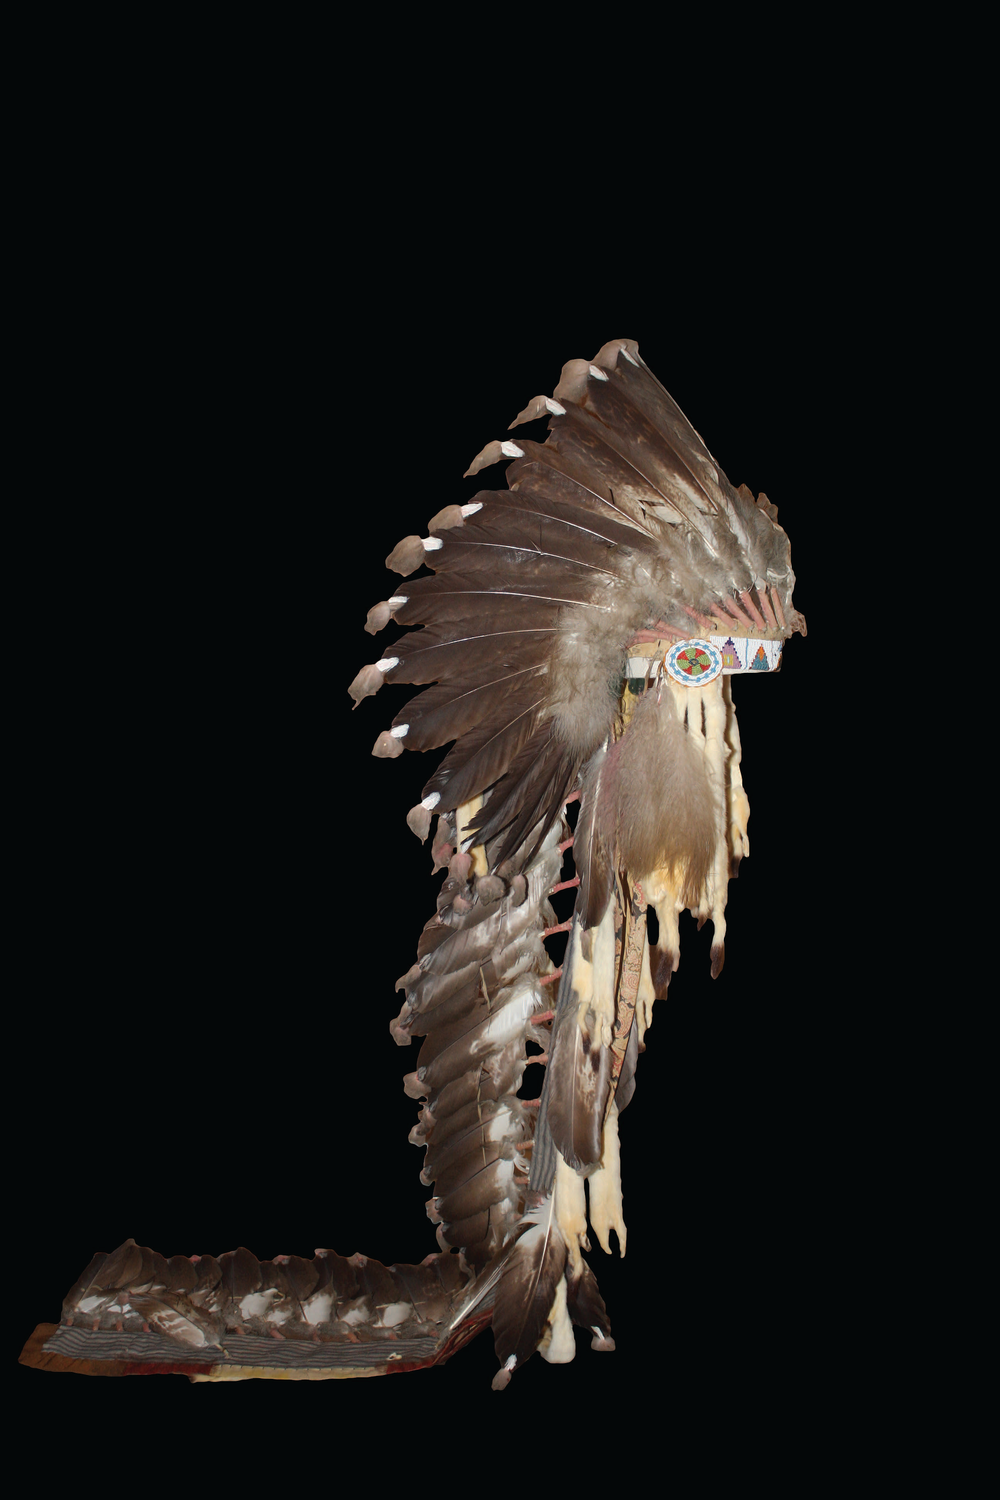 Blackfoot Headdress, ca. late 1800s. On loan from the University of Arkansas.